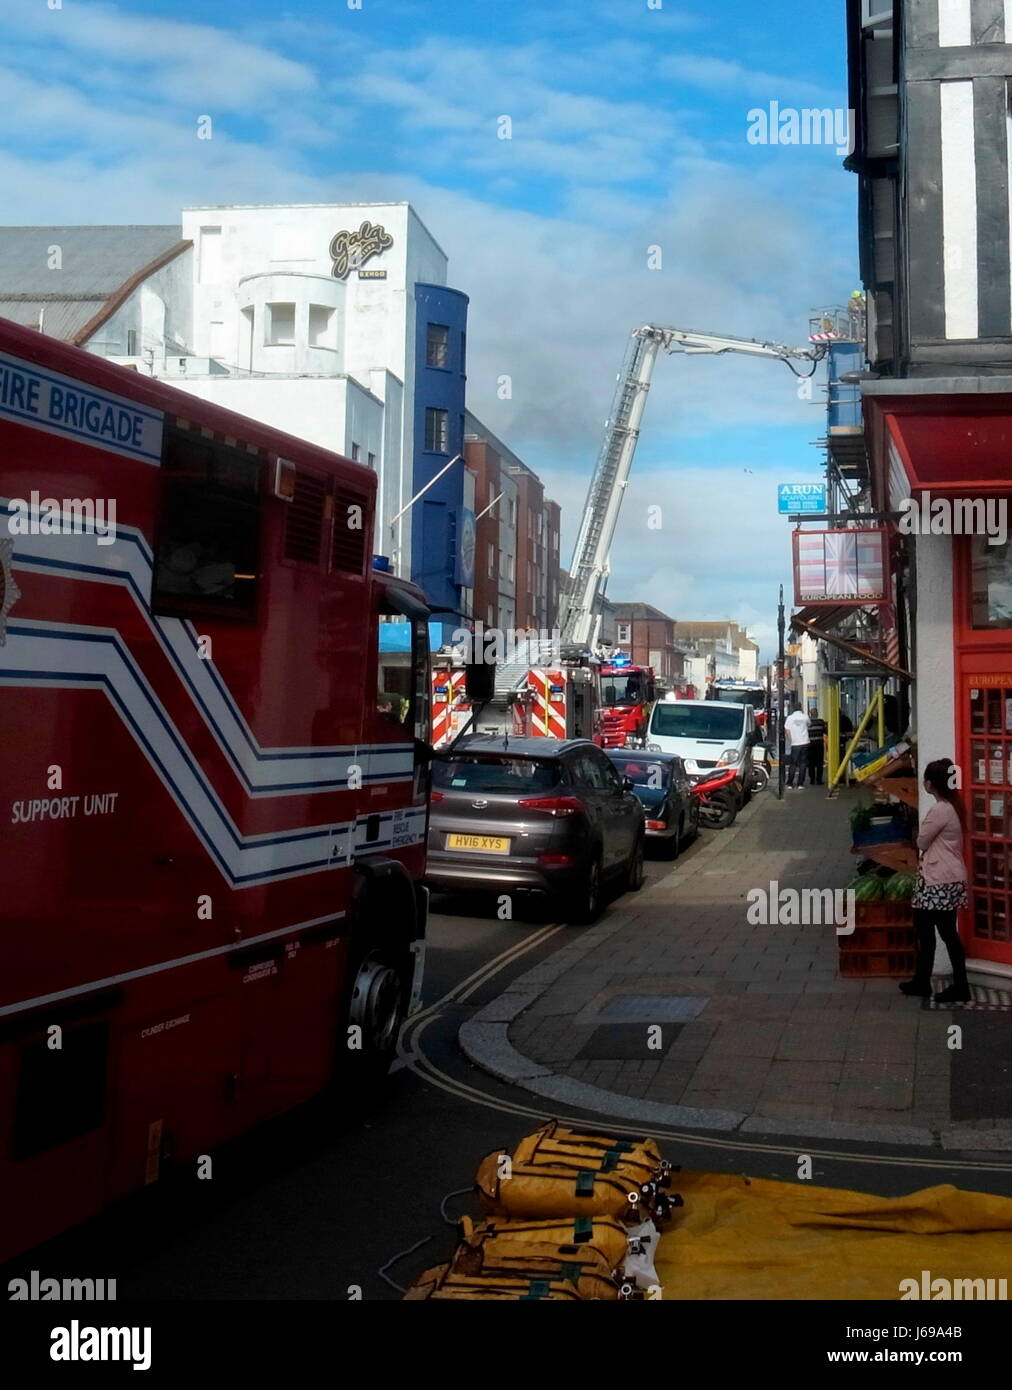 Worthing, England. 20th May, 2017. - Firemen tackle flat fire - West Sussex Fire & Rescue Service firemen tackle - Stock Image